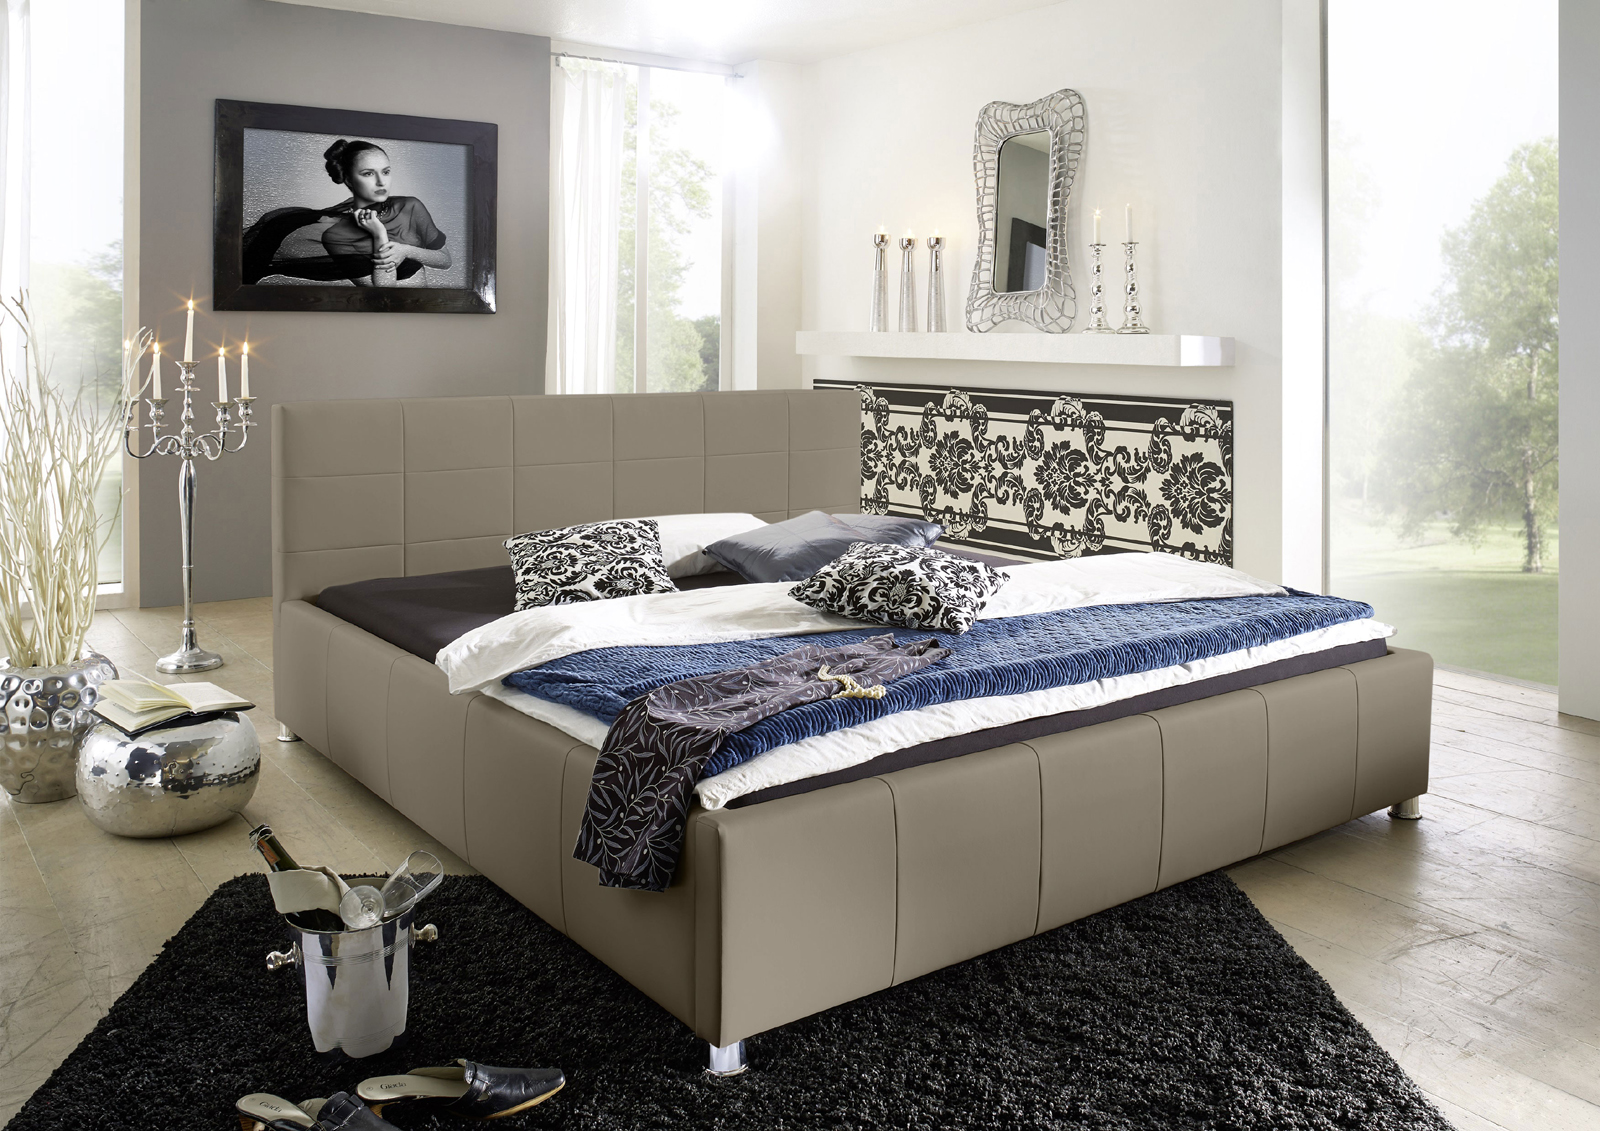 sam design bett 140 x 200 cm muddy kira auf lager. Black Bedroom Furniture Sets. Home Design Ideas